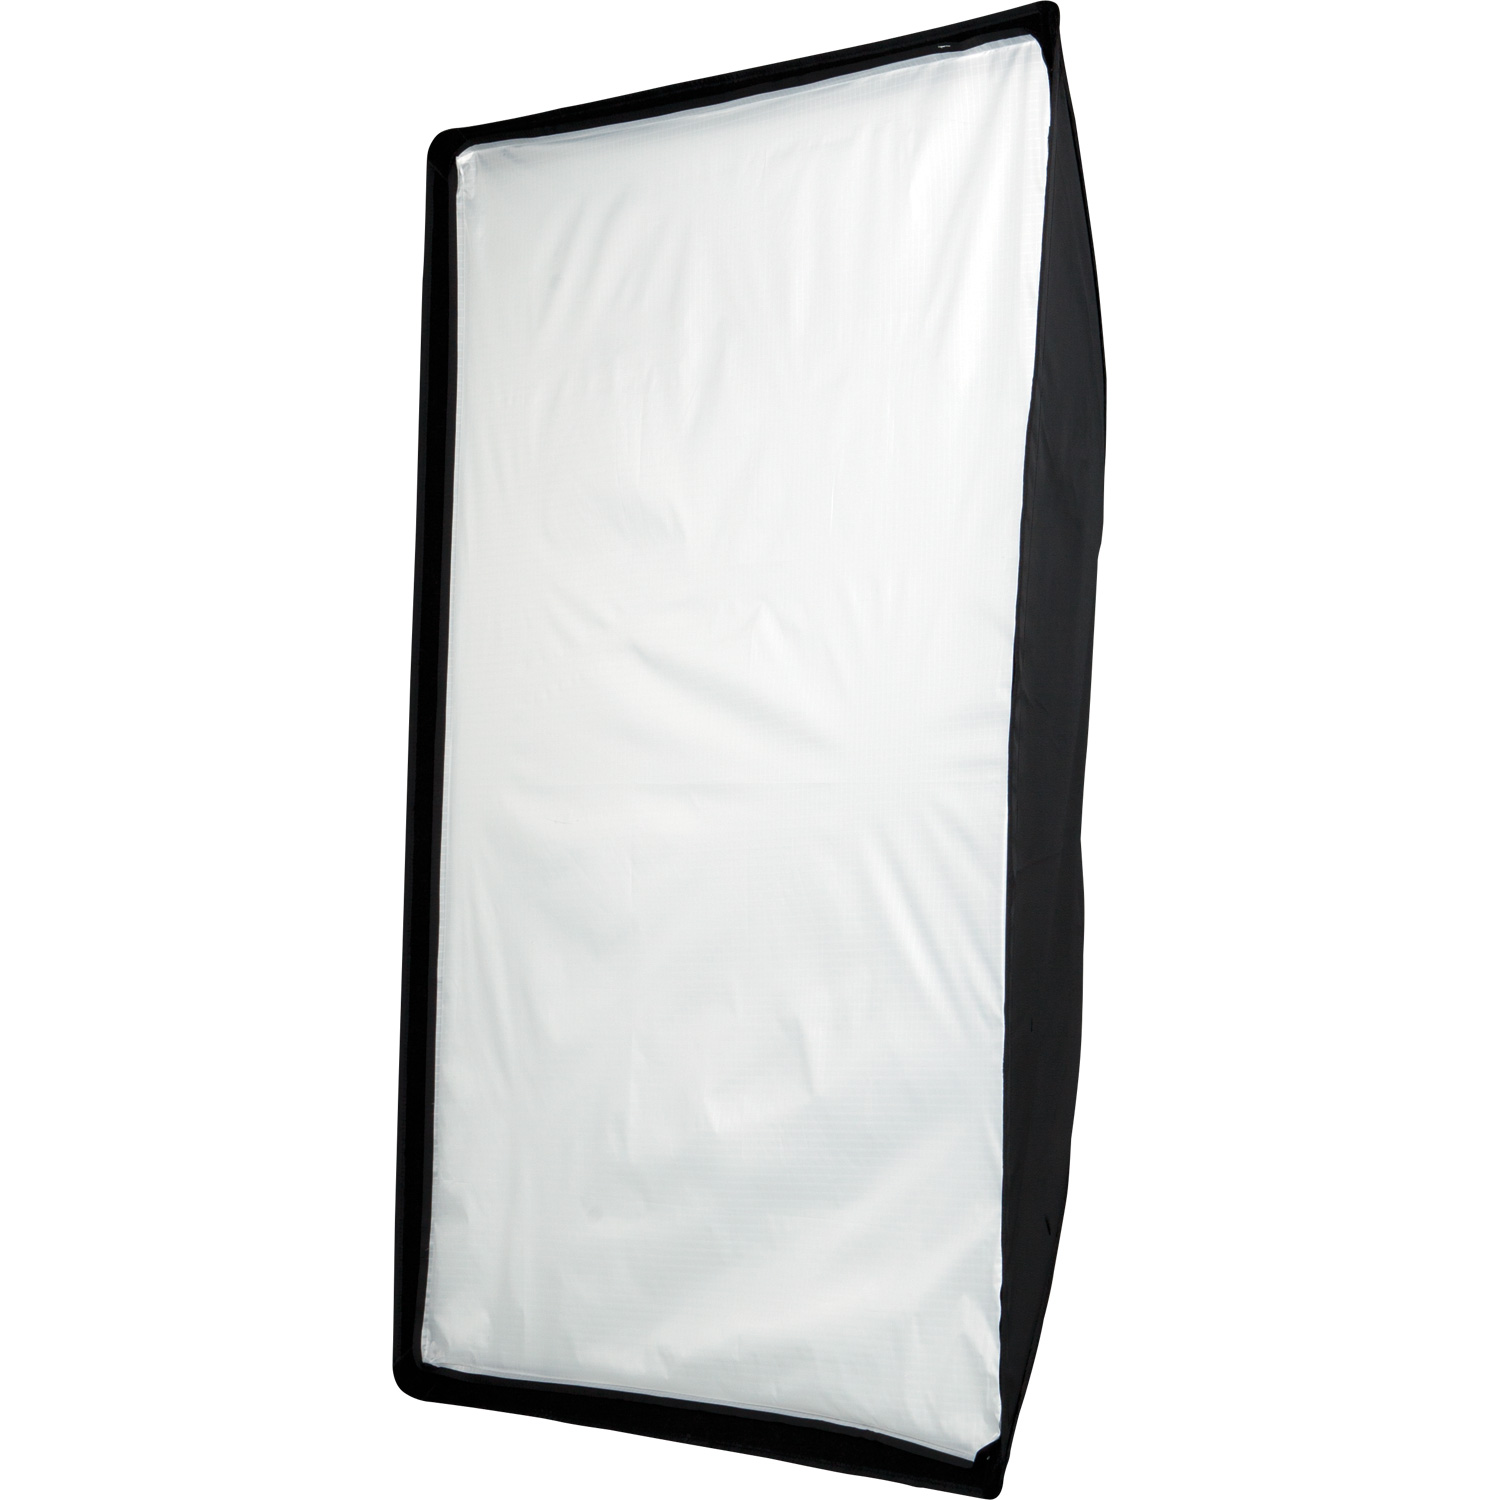 Pro 36-in. x 48-in. Shallow Softbox